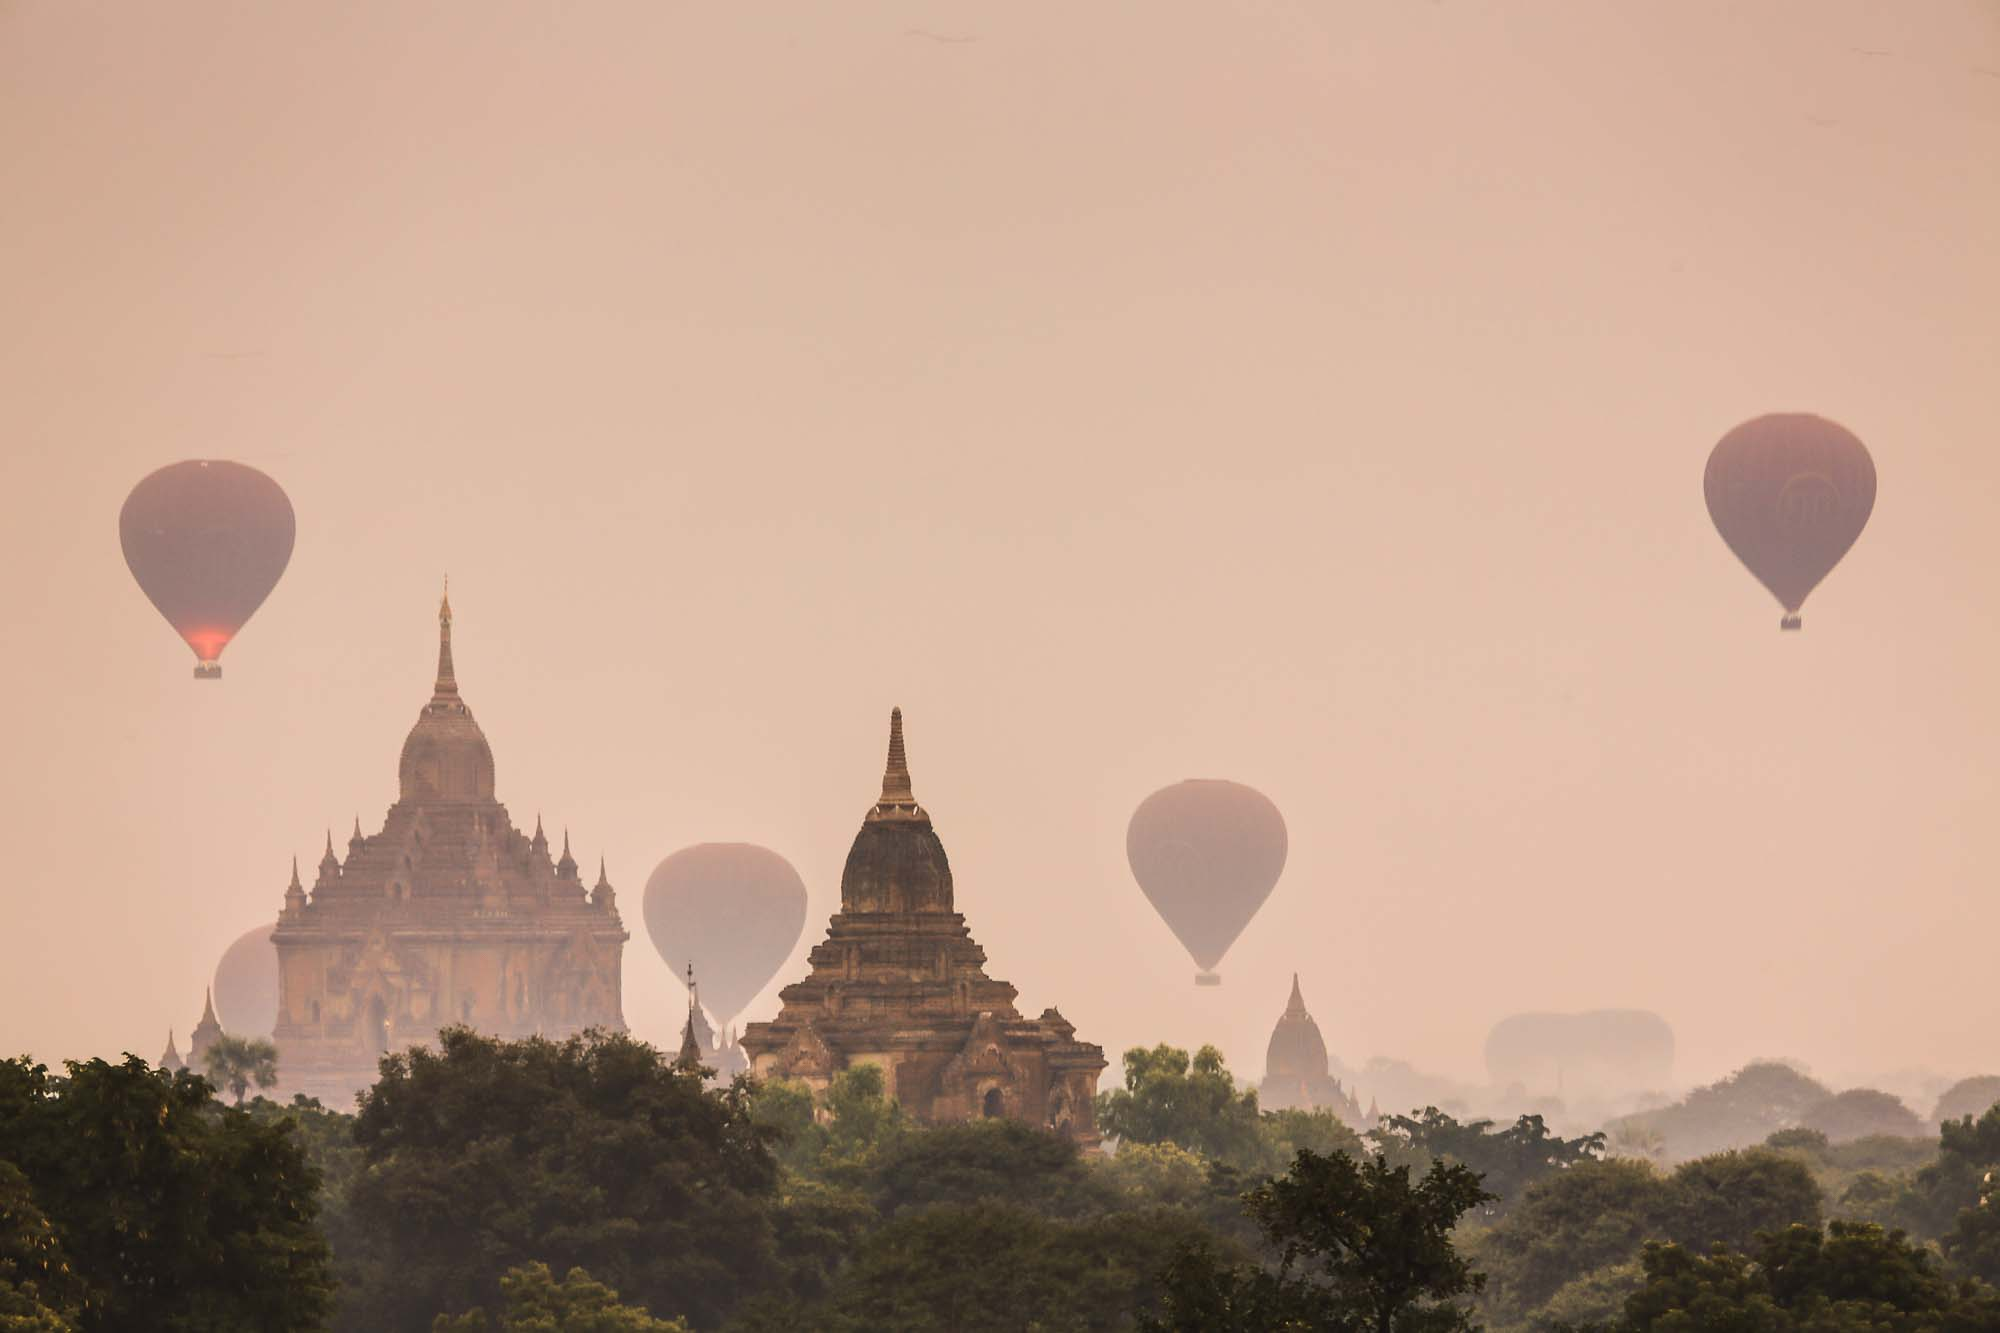 Balloons taking off in the misty morning - Myanmar_2014_JusMedic